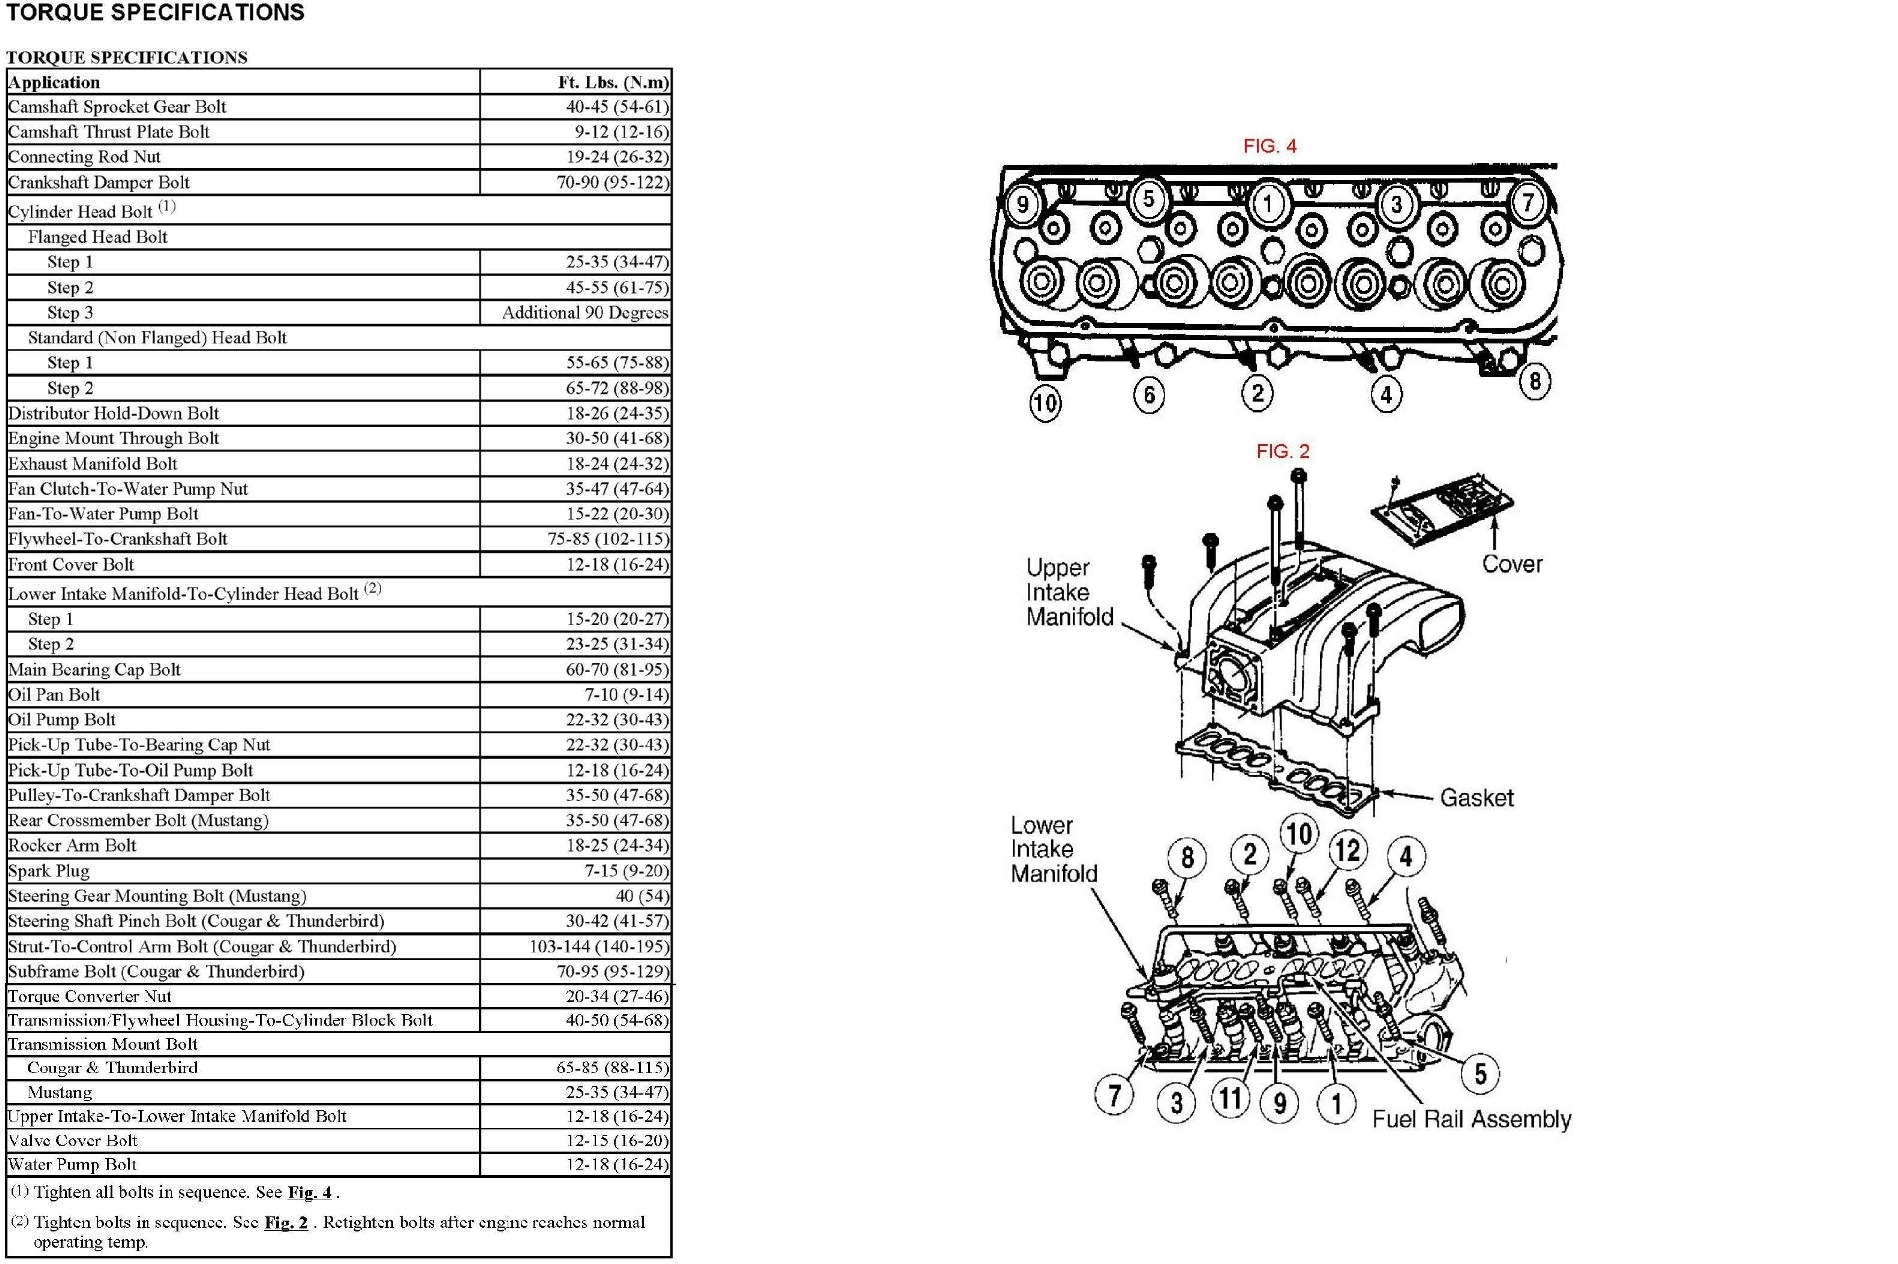 1990 Ford F 150 5 0 Liter Engine Diagram Wiring Library Foxbody Mustang 50l Torque Ratings Oil